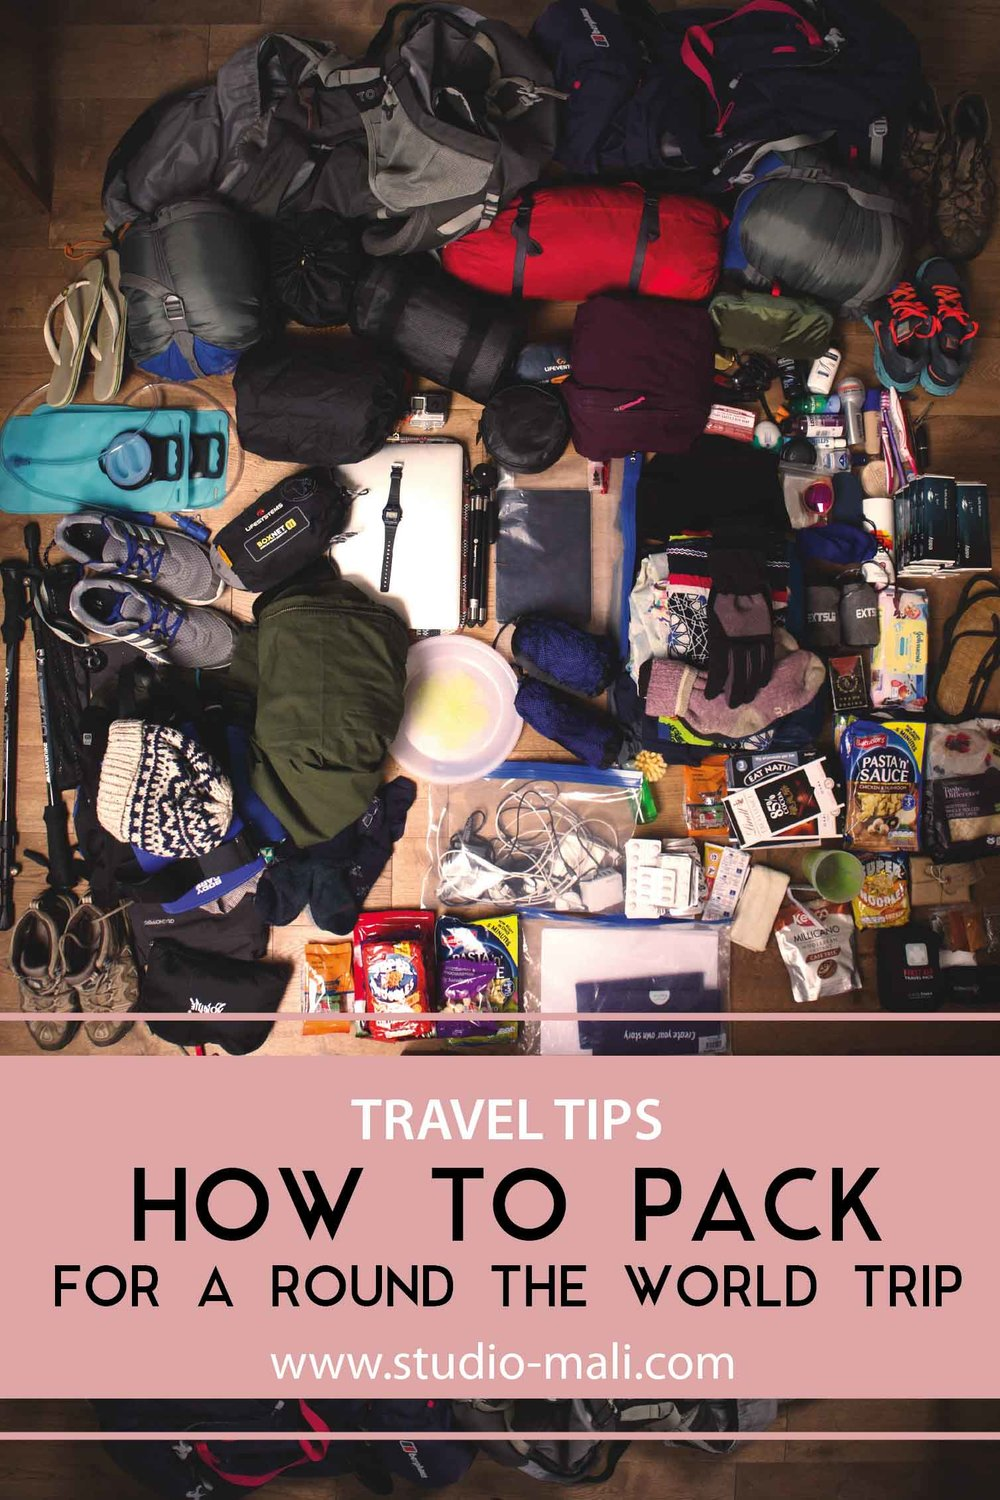 How To Pack For A Round The World Trip, by Studio Mali